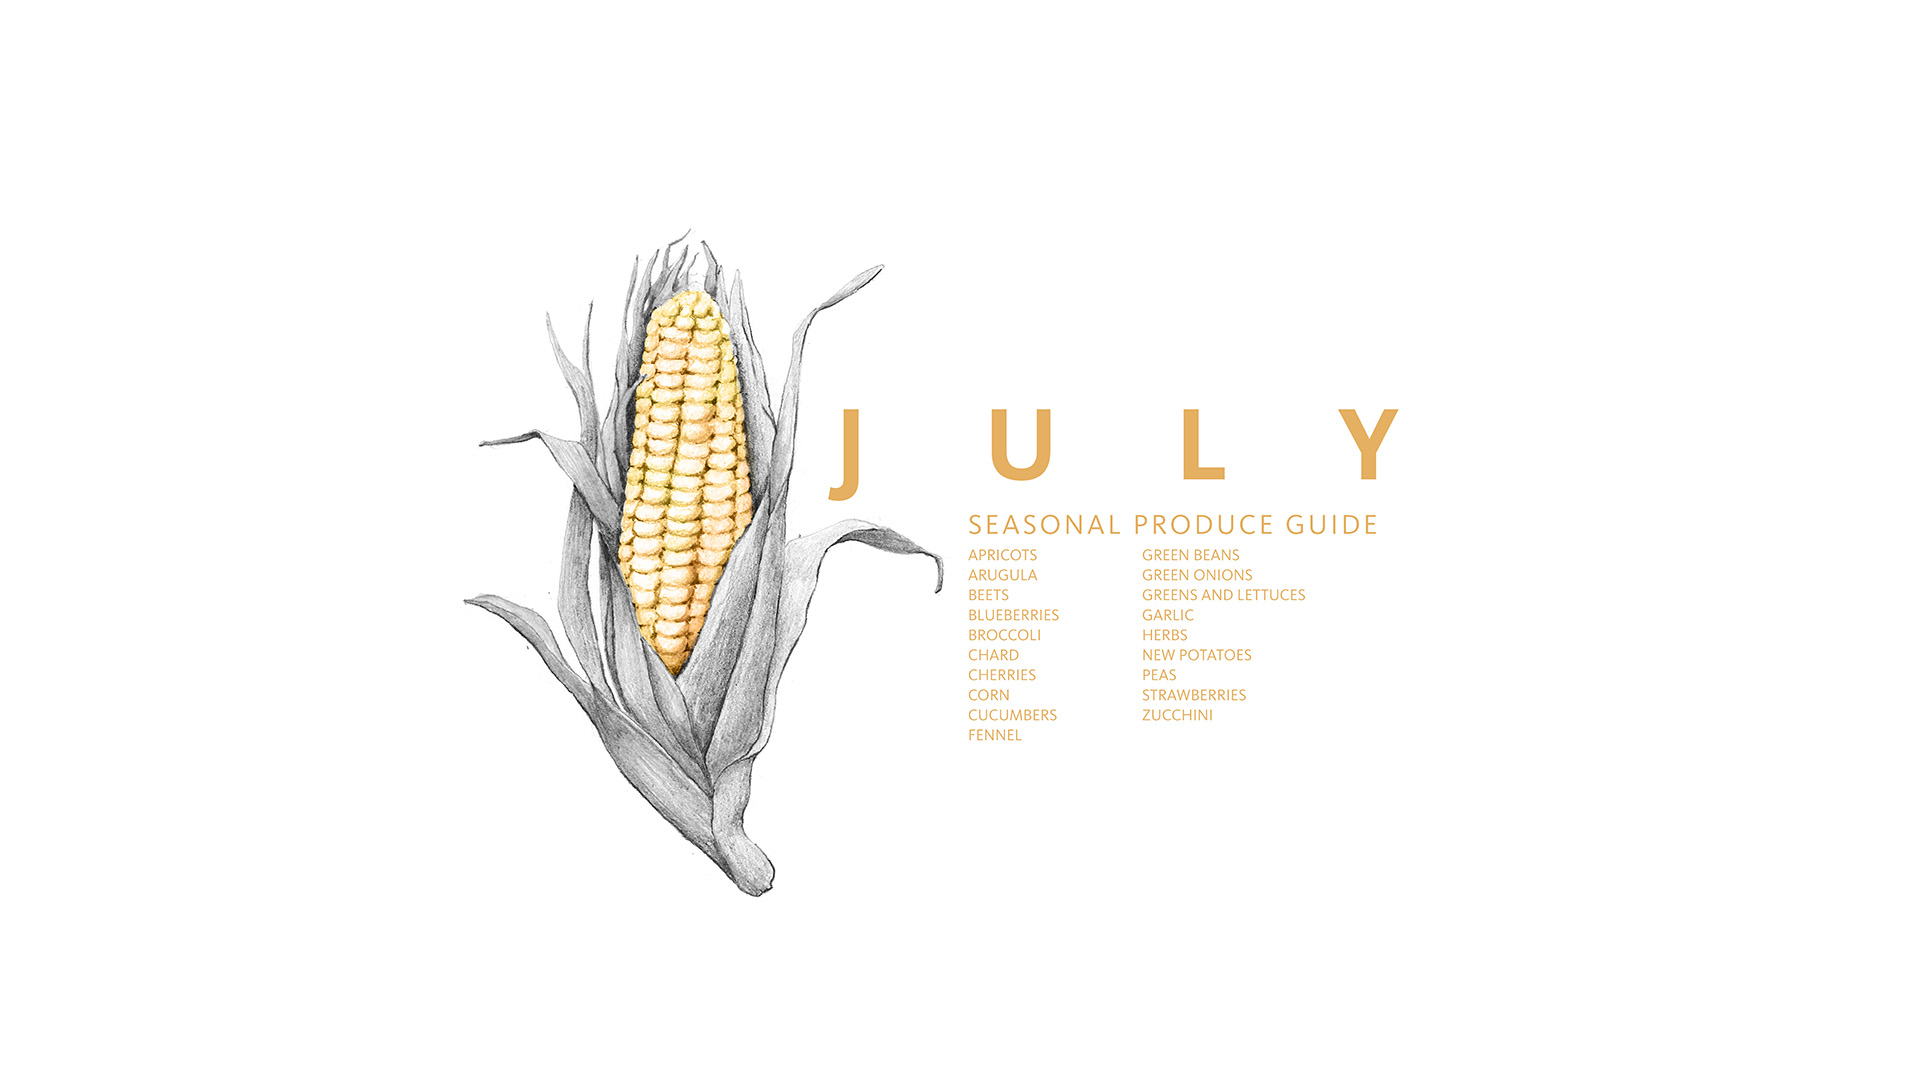 Check out this Seasonal Produce List for July. You can download the image and save it to your phone or computer to remember to eat fresh this month.